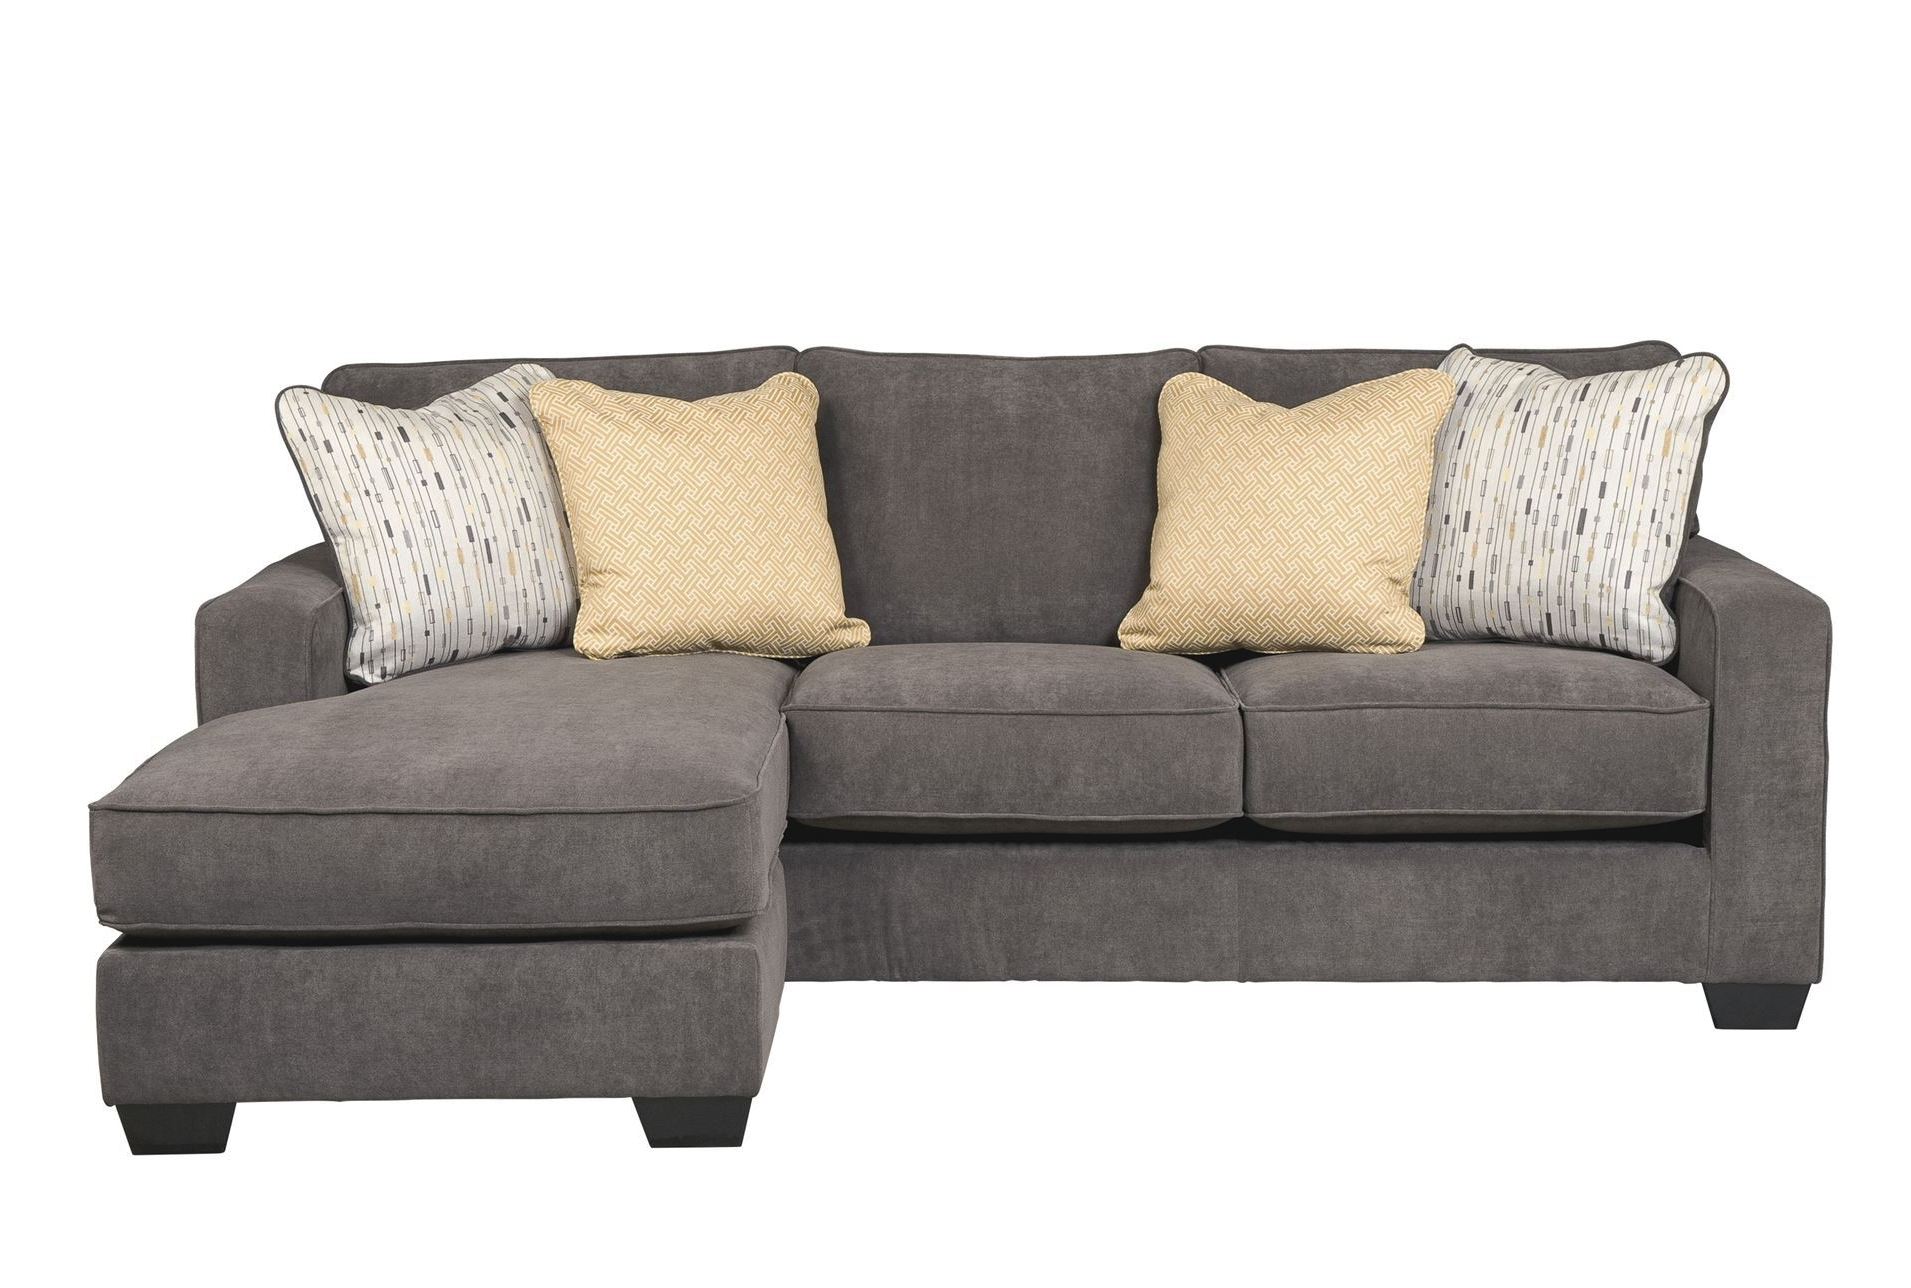 Most Recently Released Apartment Size Sectional Sofa With Chaise Cheap Sectional Sofas With Regard To Small Chaise Lounges (View 7 of 15)